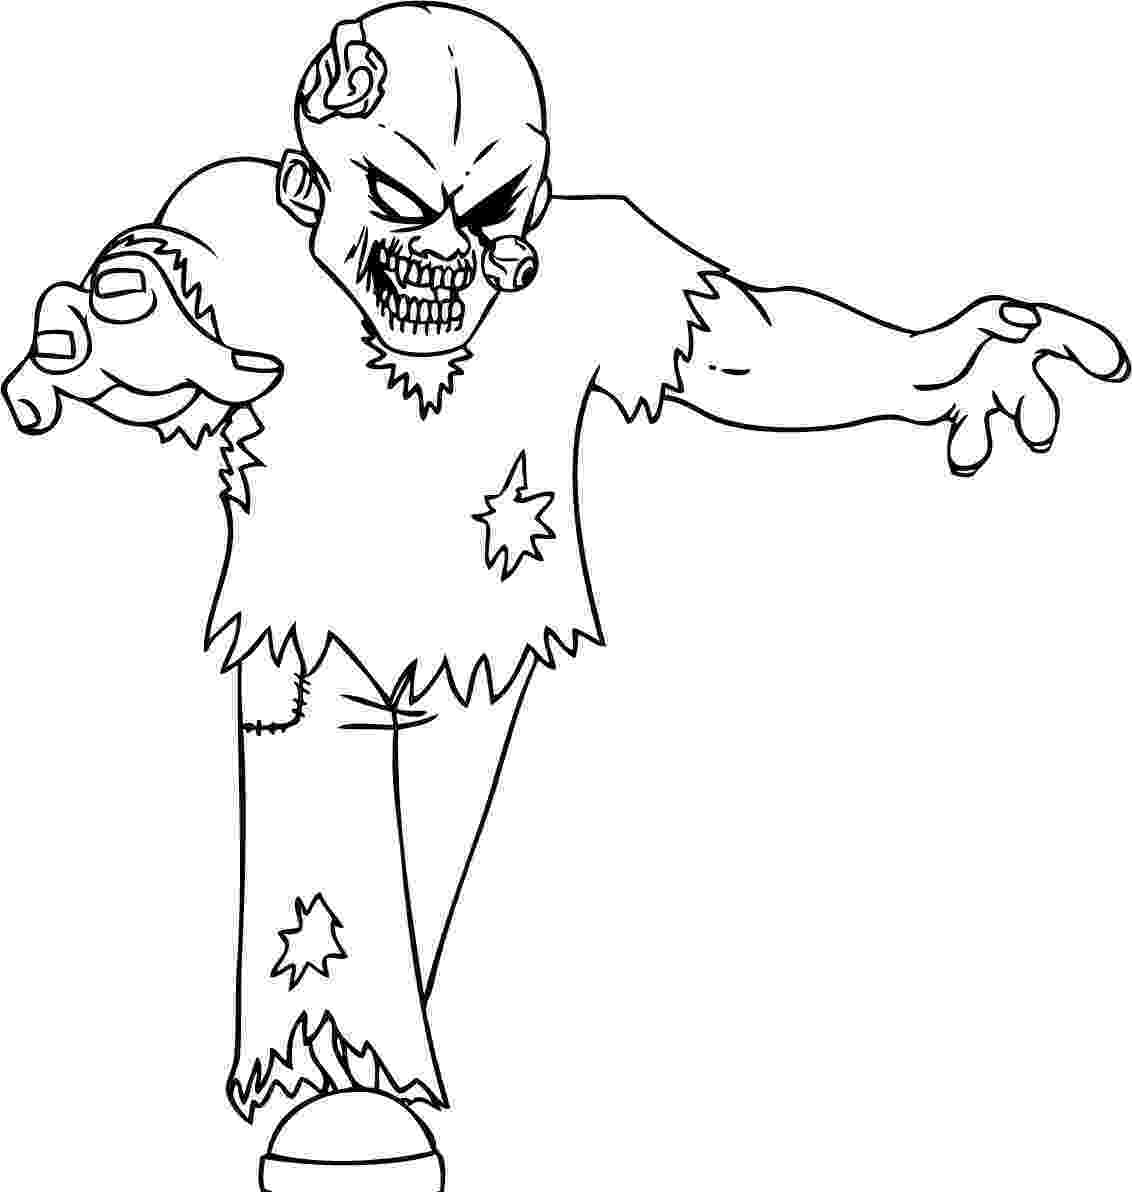 free printable zombie coloring pages free printable zombies coloring pages for kids coloring pages zombie free printable